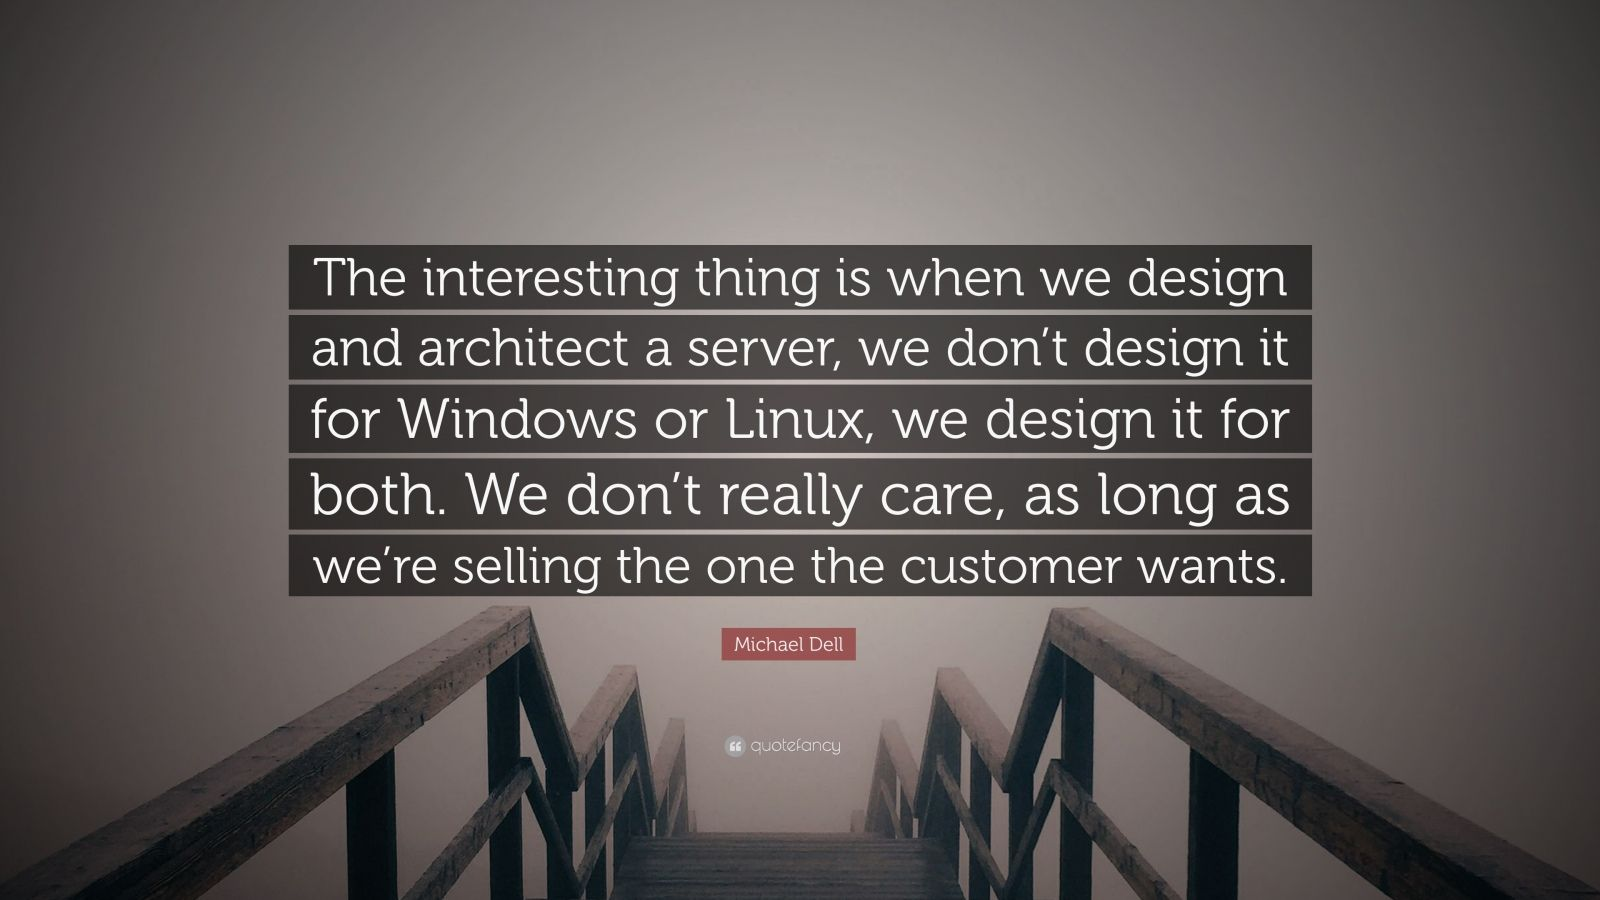 """Michael Dell Quote: """"The interesting thing is when we design and architect a server, we don't design it for Windows or Linux, we design it for both. We don't really care, as long as we're selling the one the customer wants."""""""